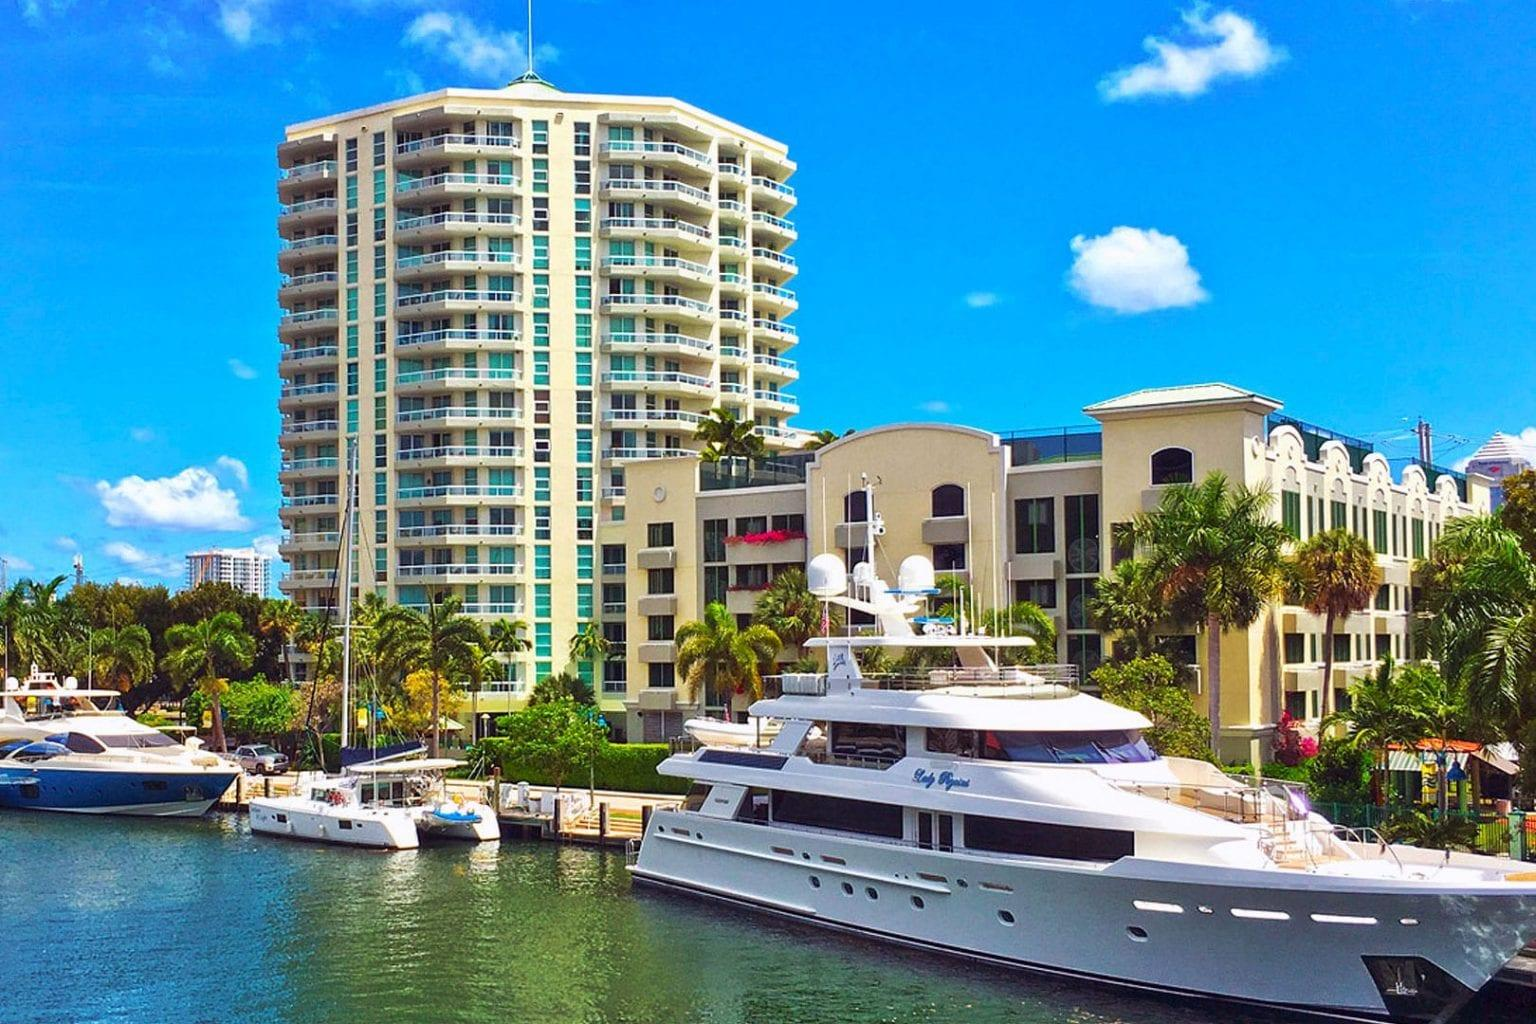 Esplanade on the River condo residences in Fort Lauderdale